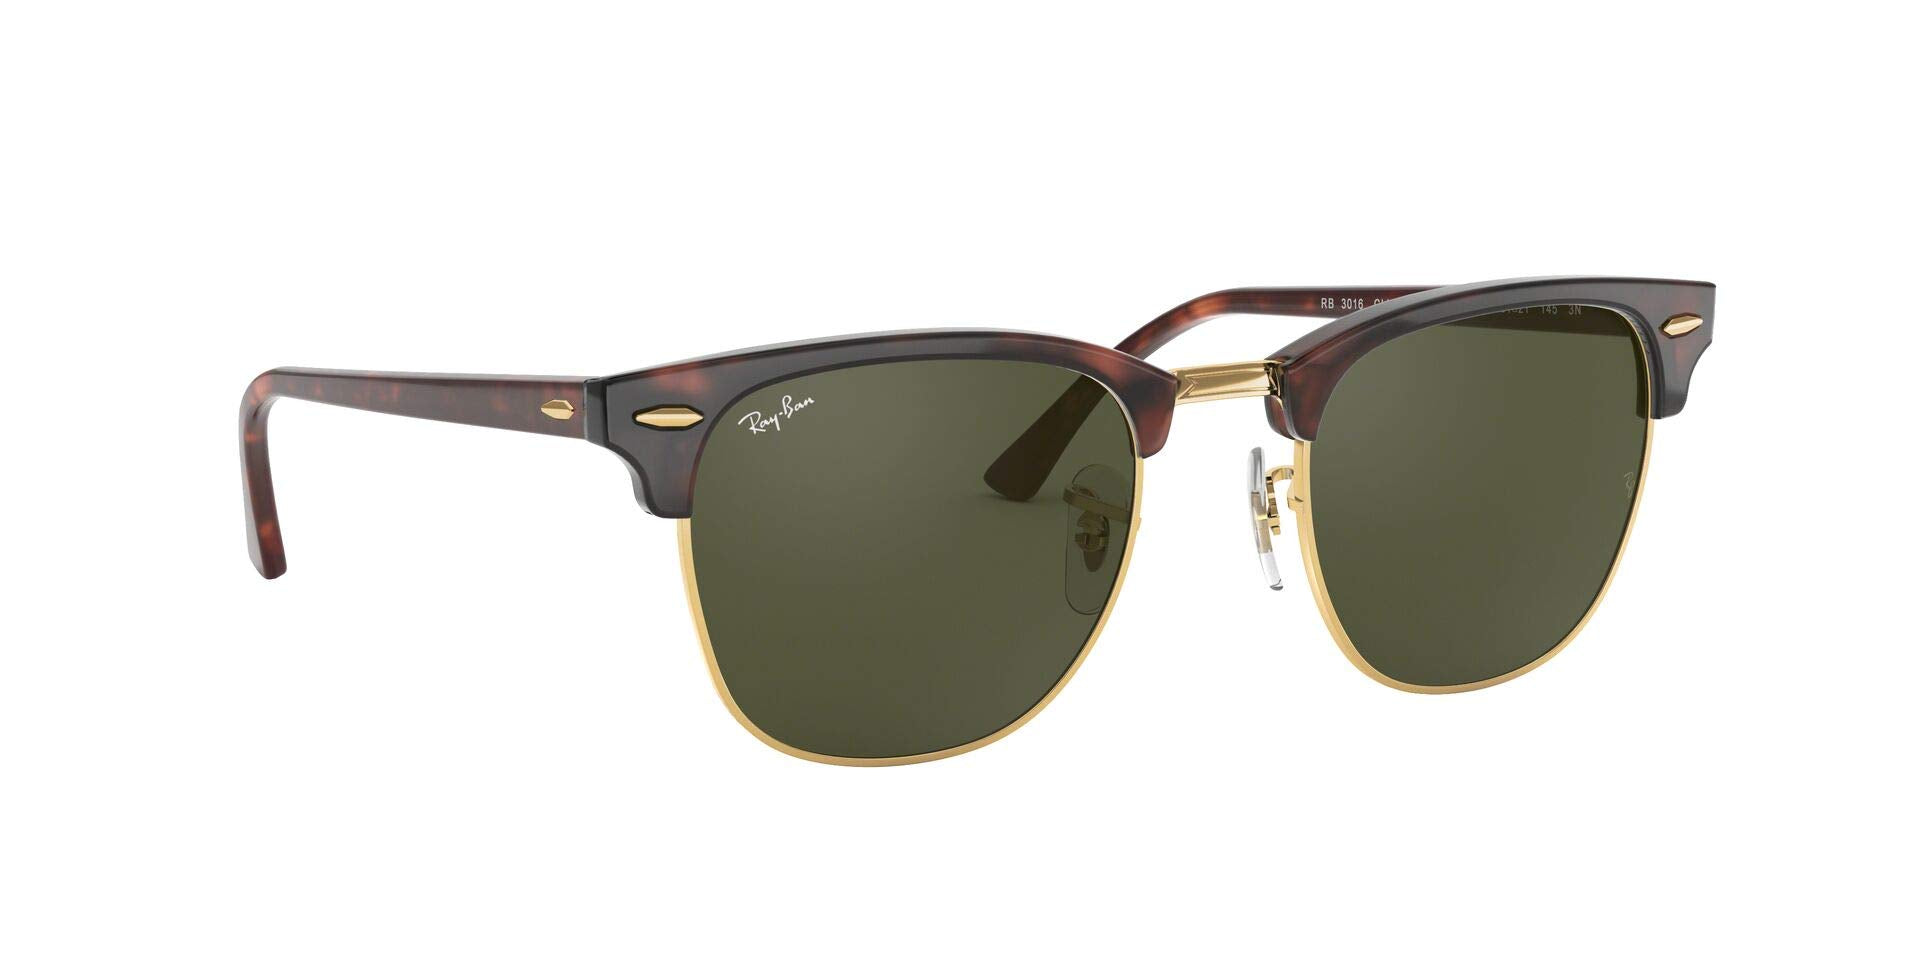 Ray-Ban Metallic RB 3016, Occhiali da Sole Unisex Adulto, Marrone (Braun Rb 3016 W0366), 51 mm Marche Famose